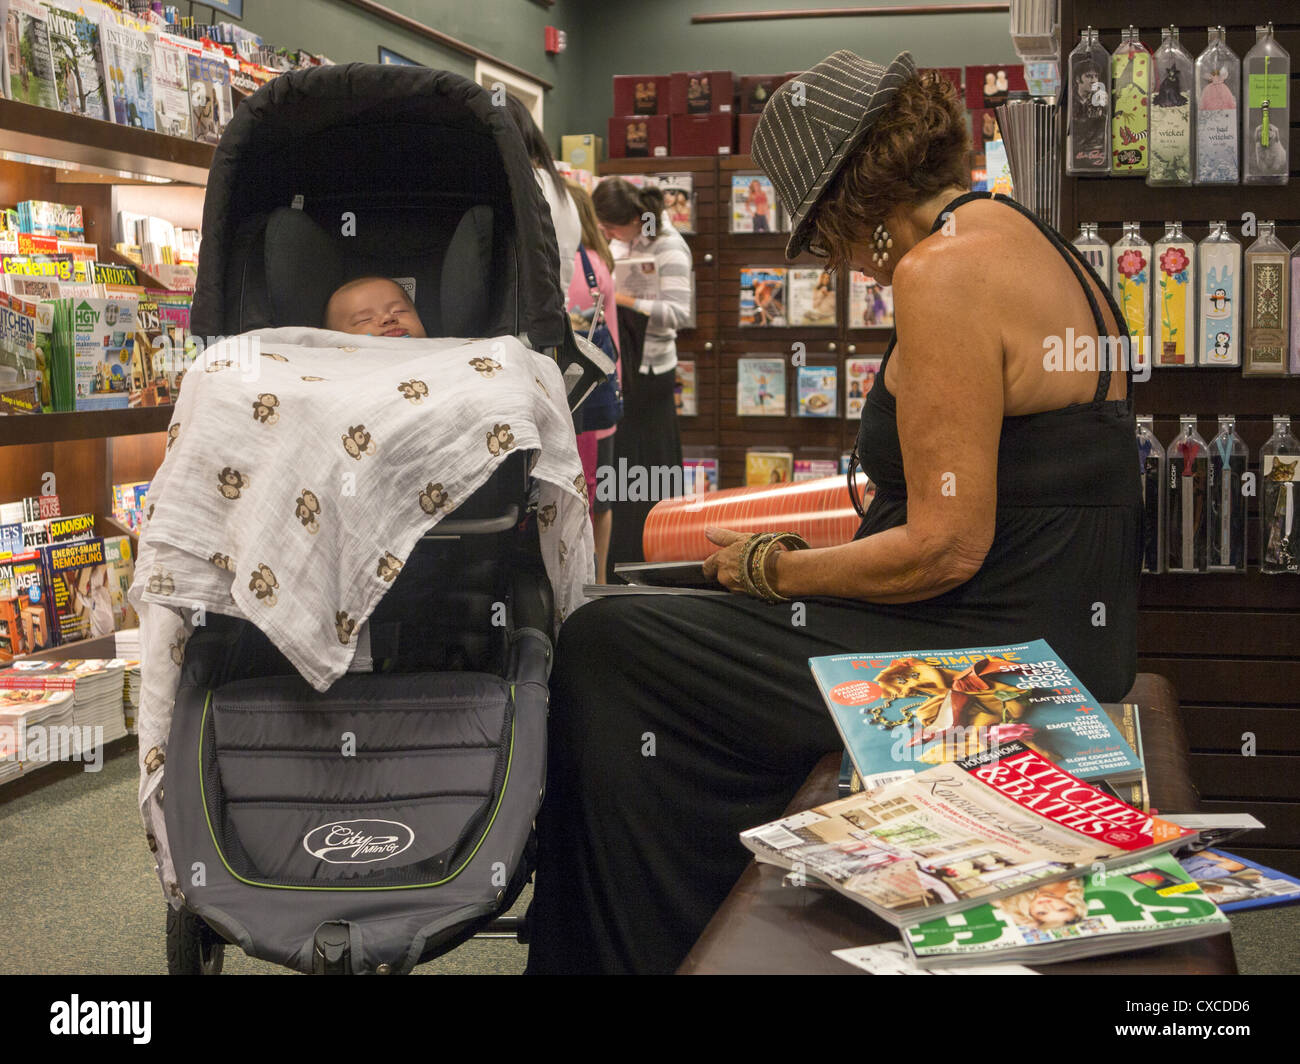 Grandma reads magazines while her grandchild snoozes at a Barnes & Noble bookstore in Park Slope, Brooklyn, - Stock Image